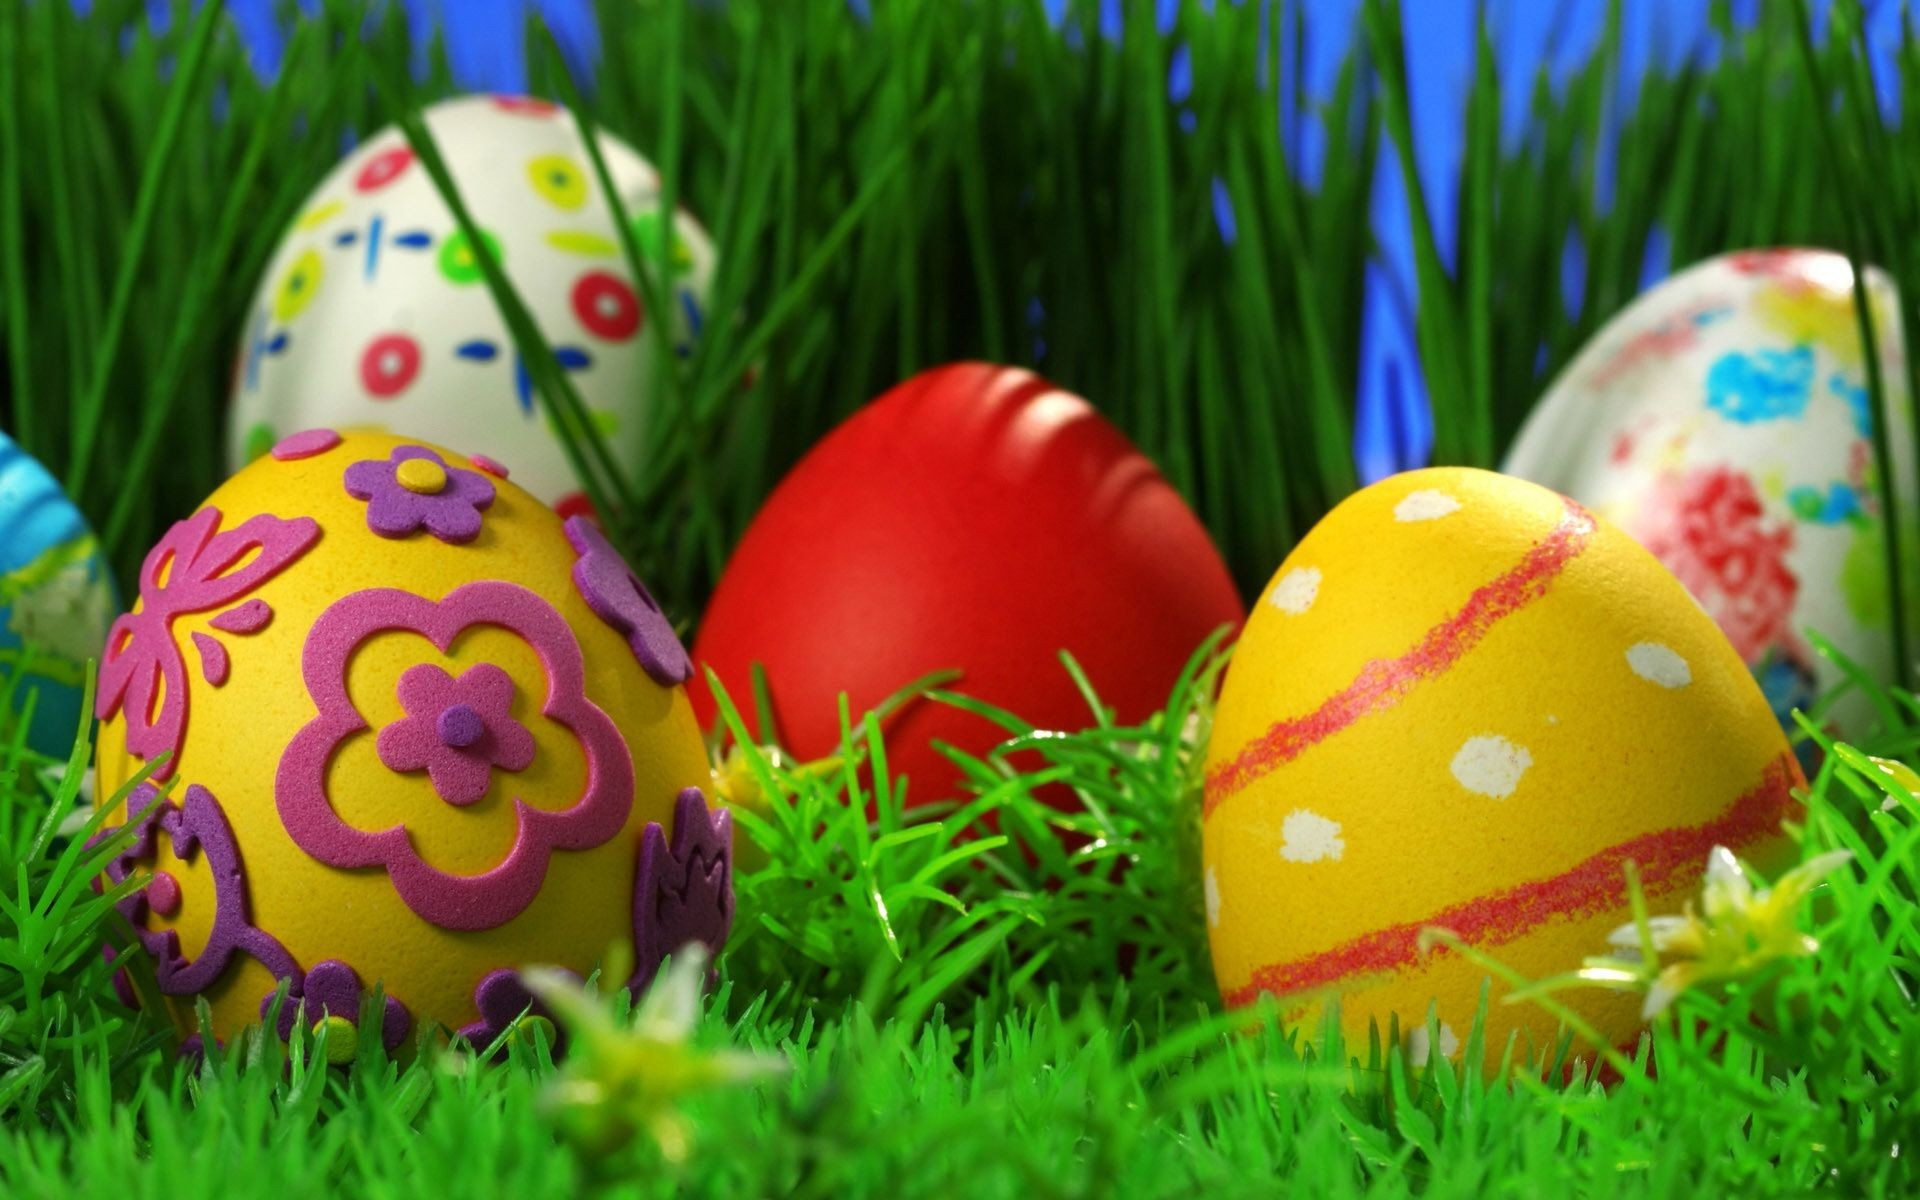 easter egg celebration grass decoration easter egg season traditional nest hunt festival rabbit color bunny gift religion hayfield thread passover